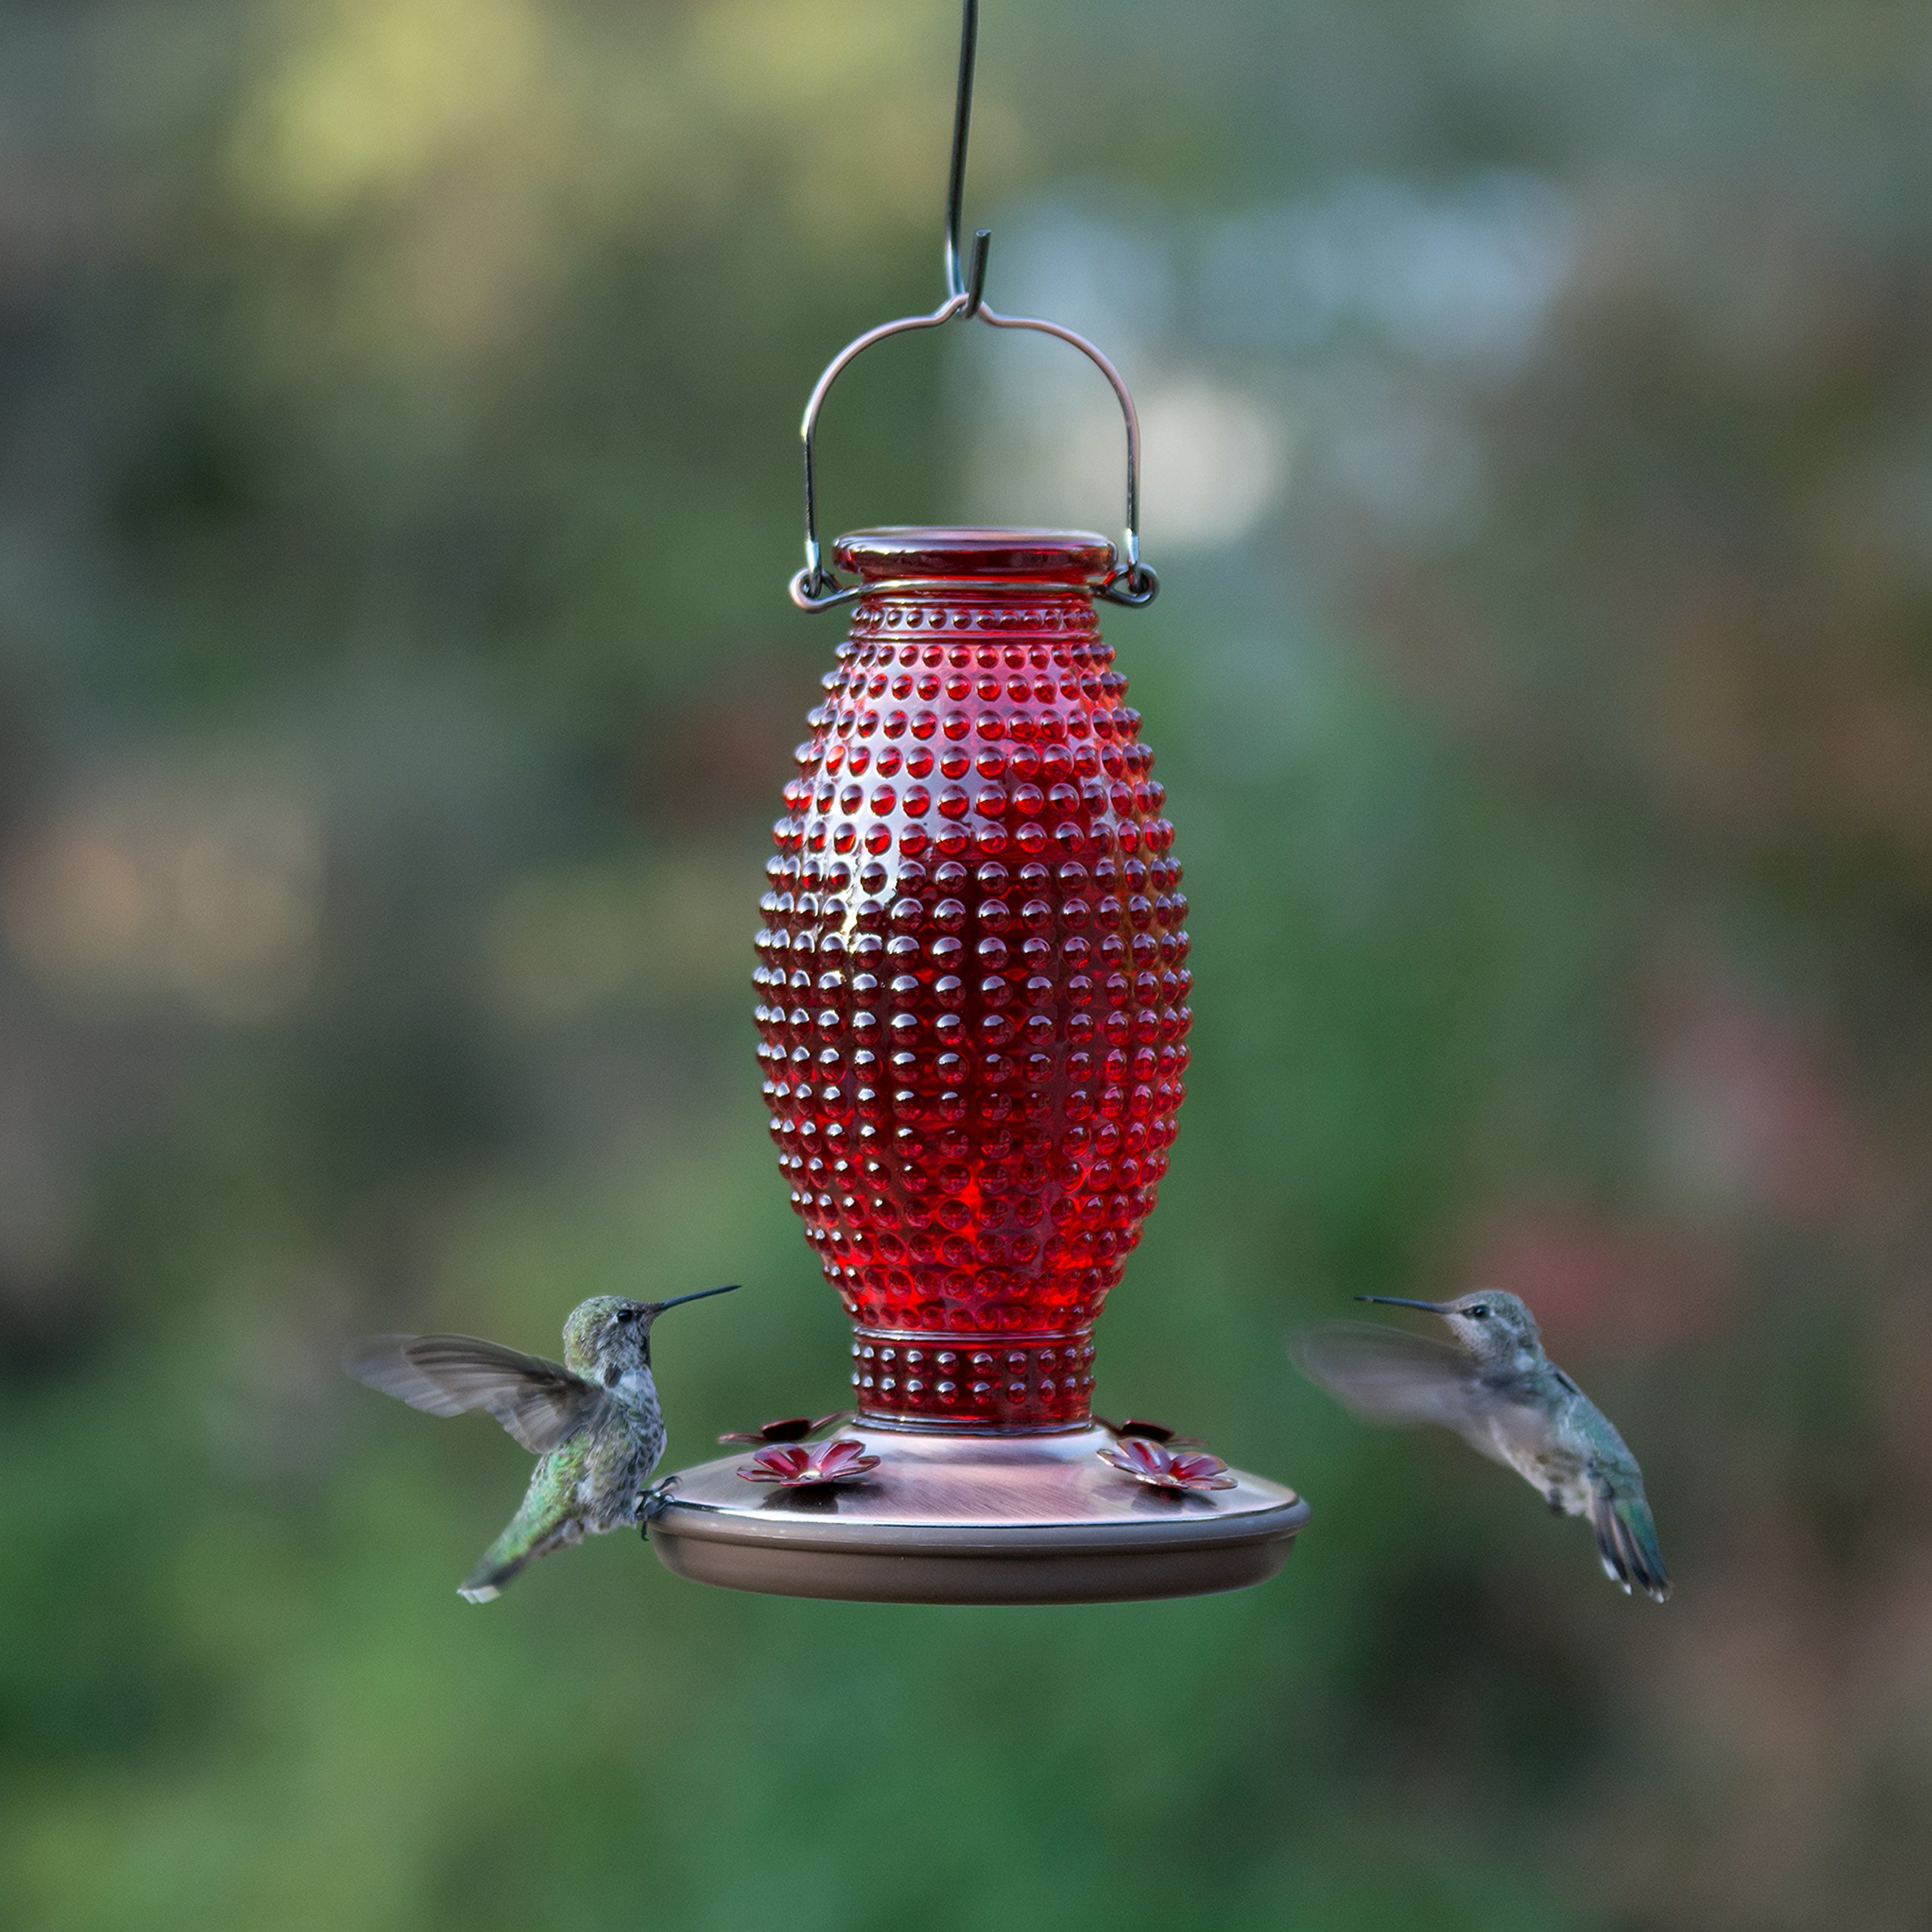 Perky-Pet Red Hobnail Vintage Glass Hummingbird Feeder 8130-2 by Perky-Pet (Image #7)